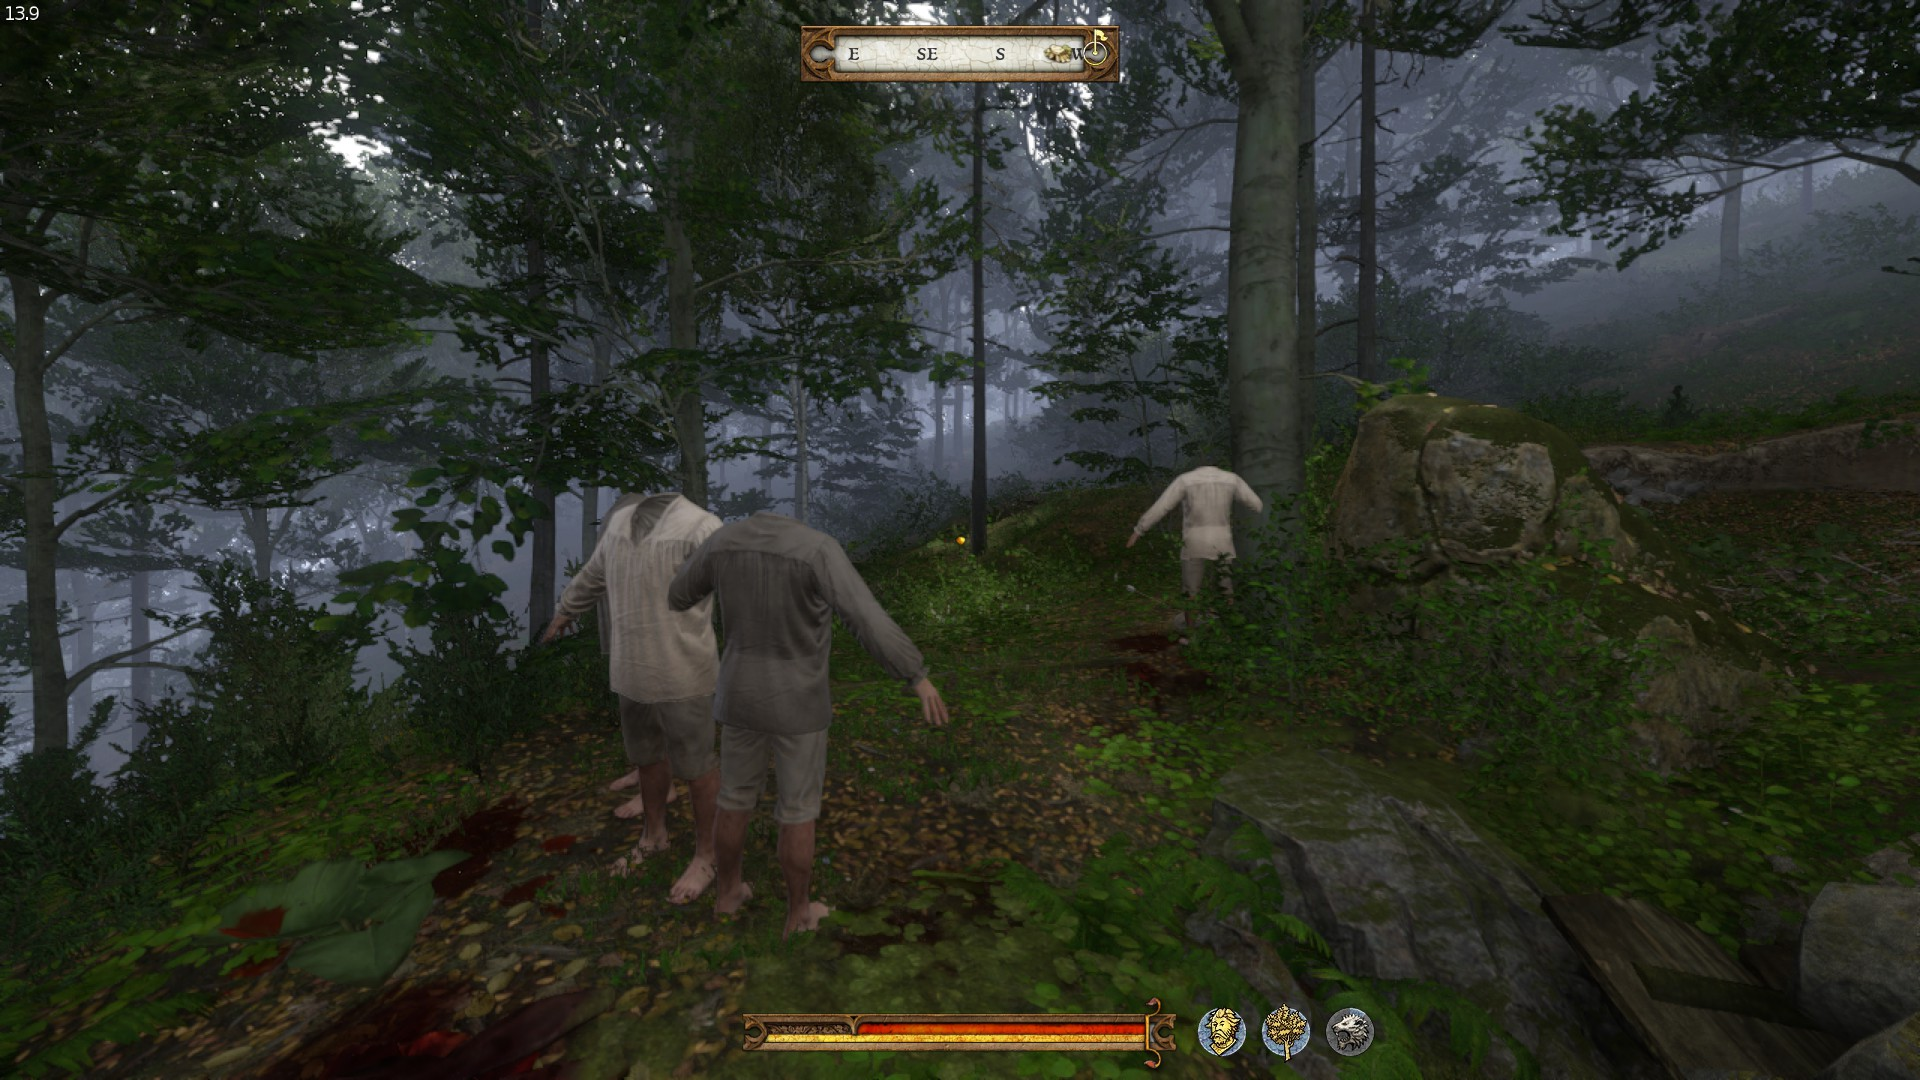 Strange headless men in the woods - Bugs - Kingdom Come: Deliverance